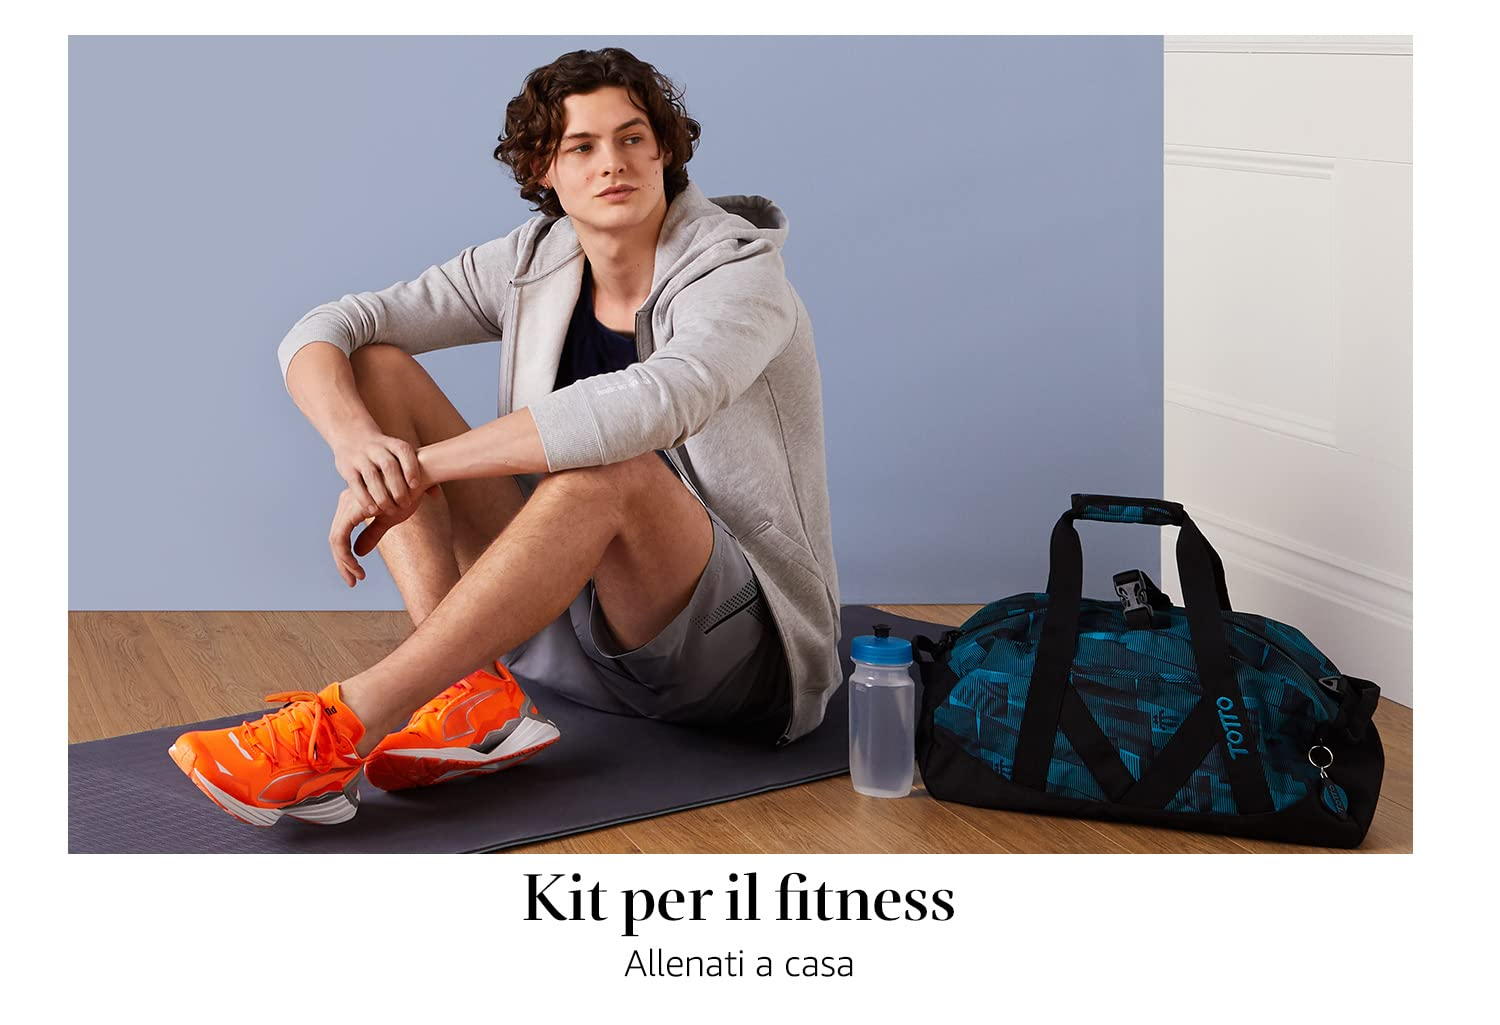 Kit per il fitness